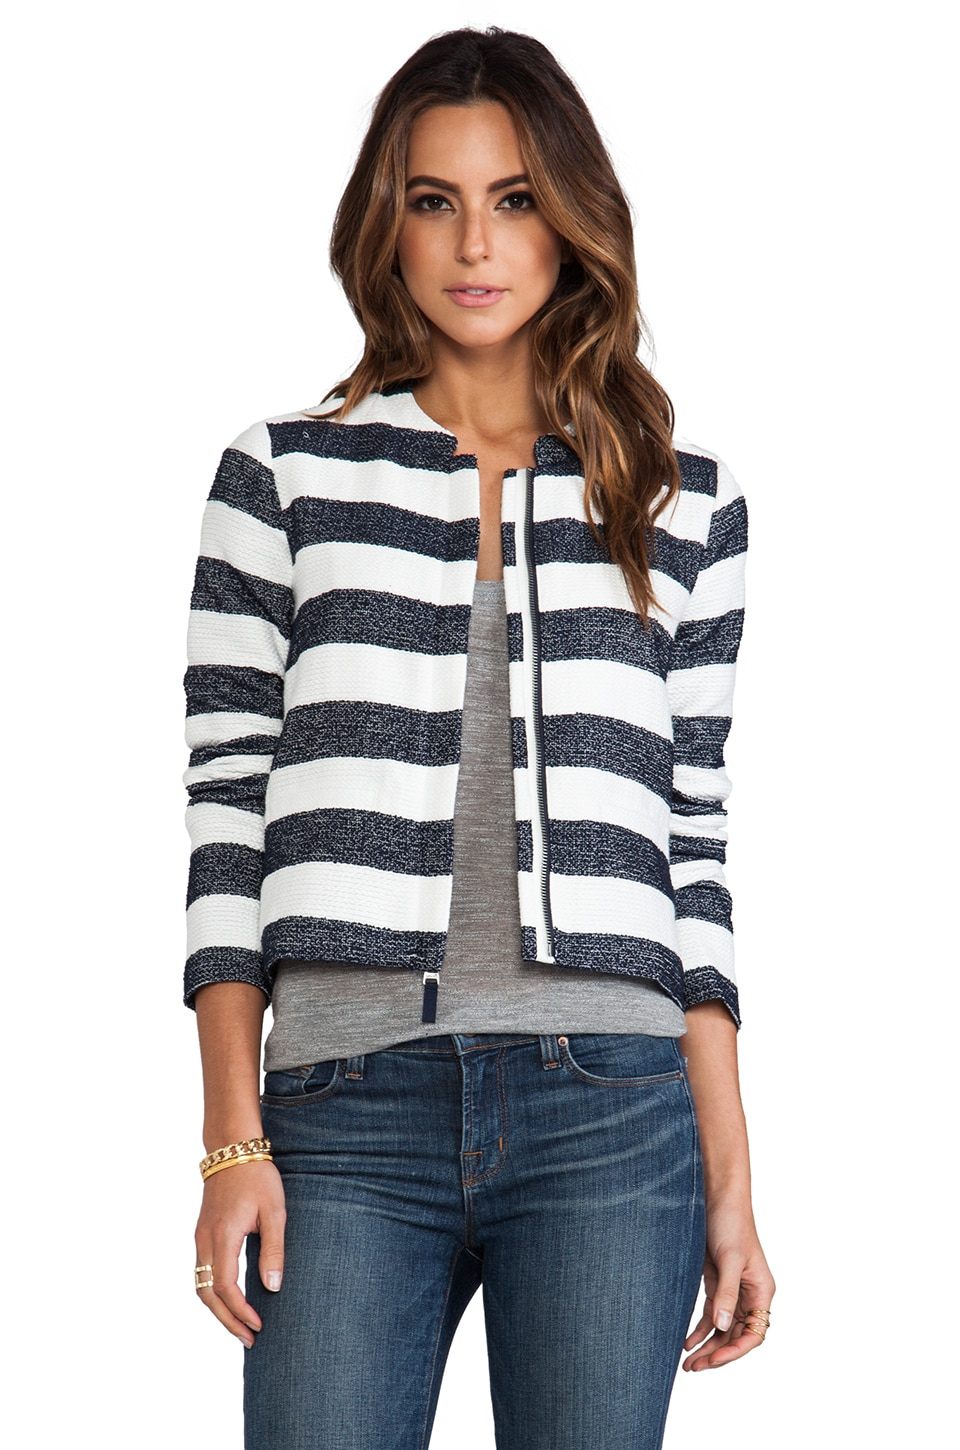 Splendid Monterey Boxy Jacket in Navy